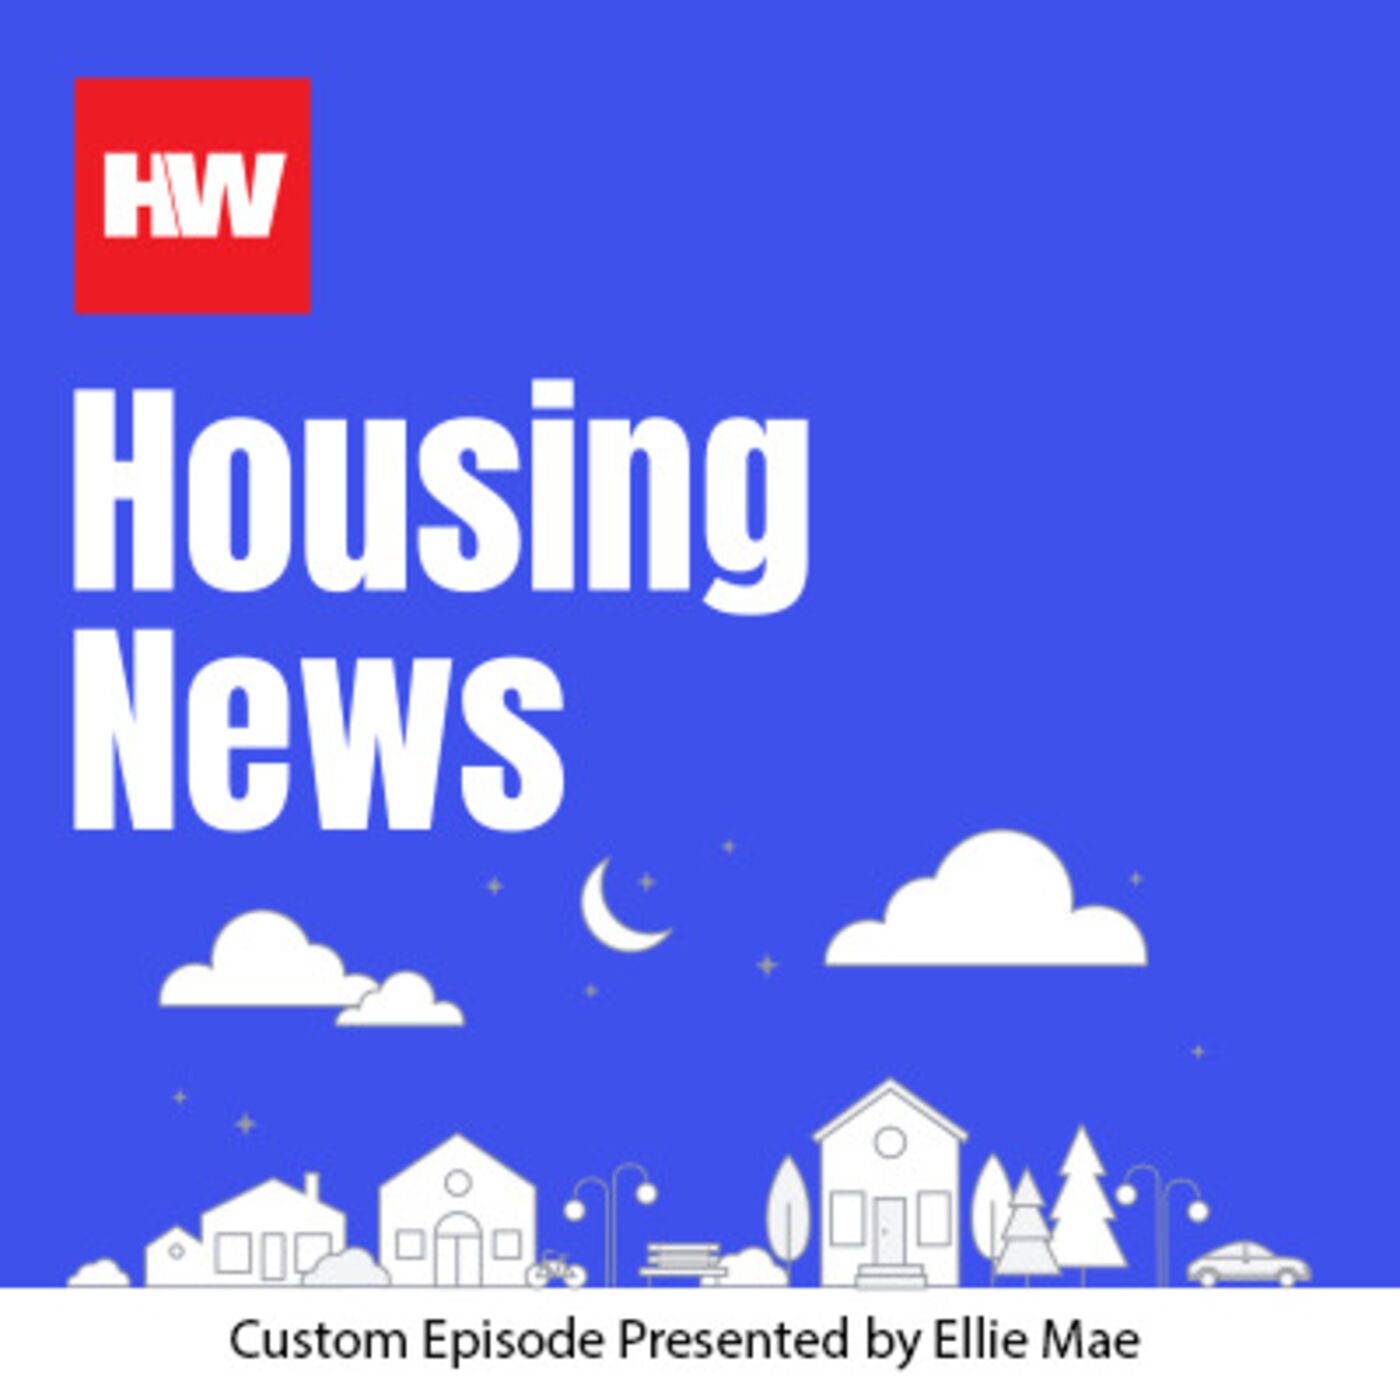 Housing News Bonus Episode: Ellie Mae's Eric Connors on what to watch for post pandemic